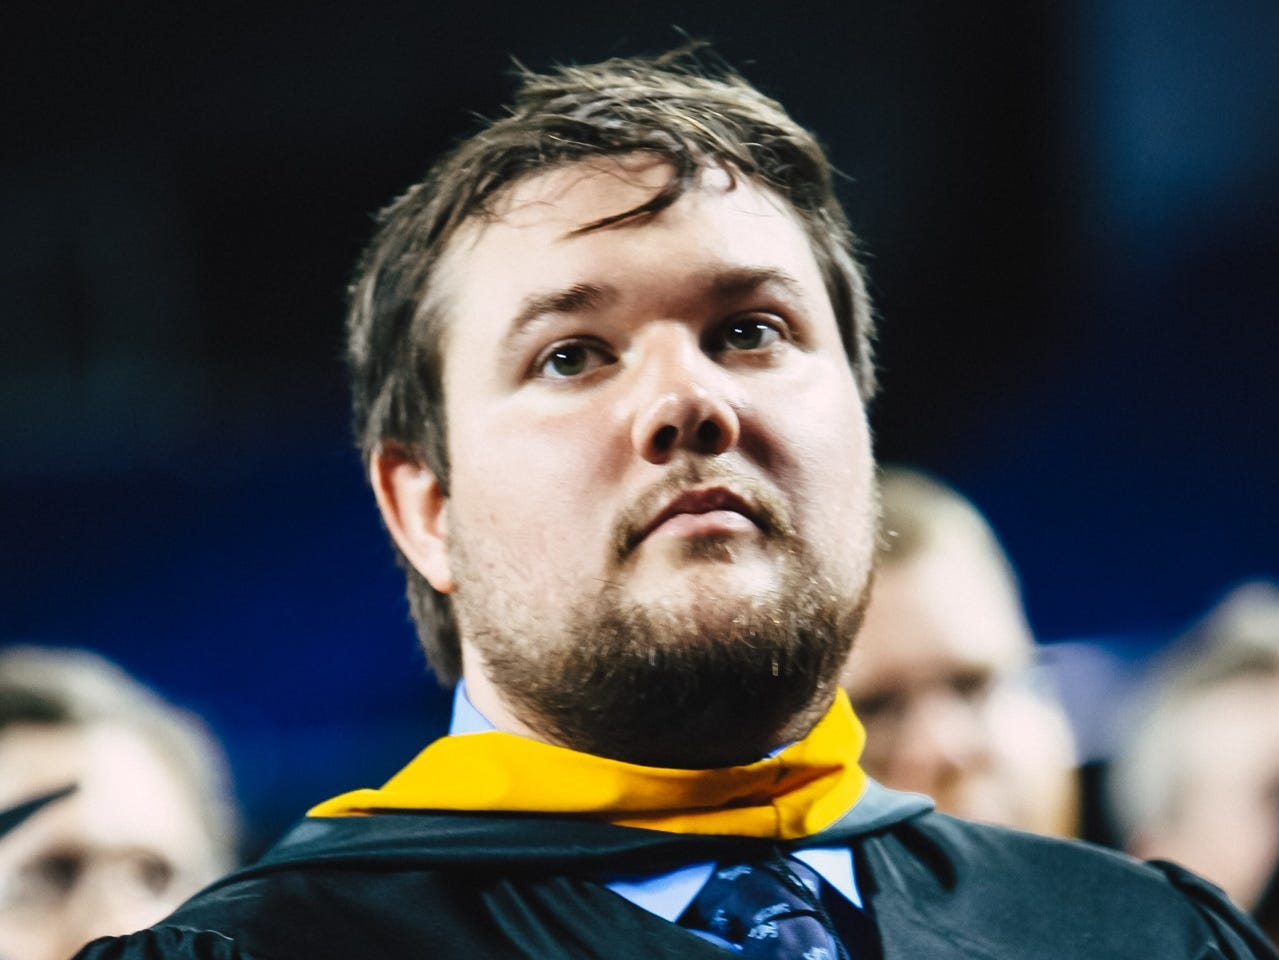 MTSU held commencement exercises for graduate students on Friday, May 3, 2019 at Murphy Center.